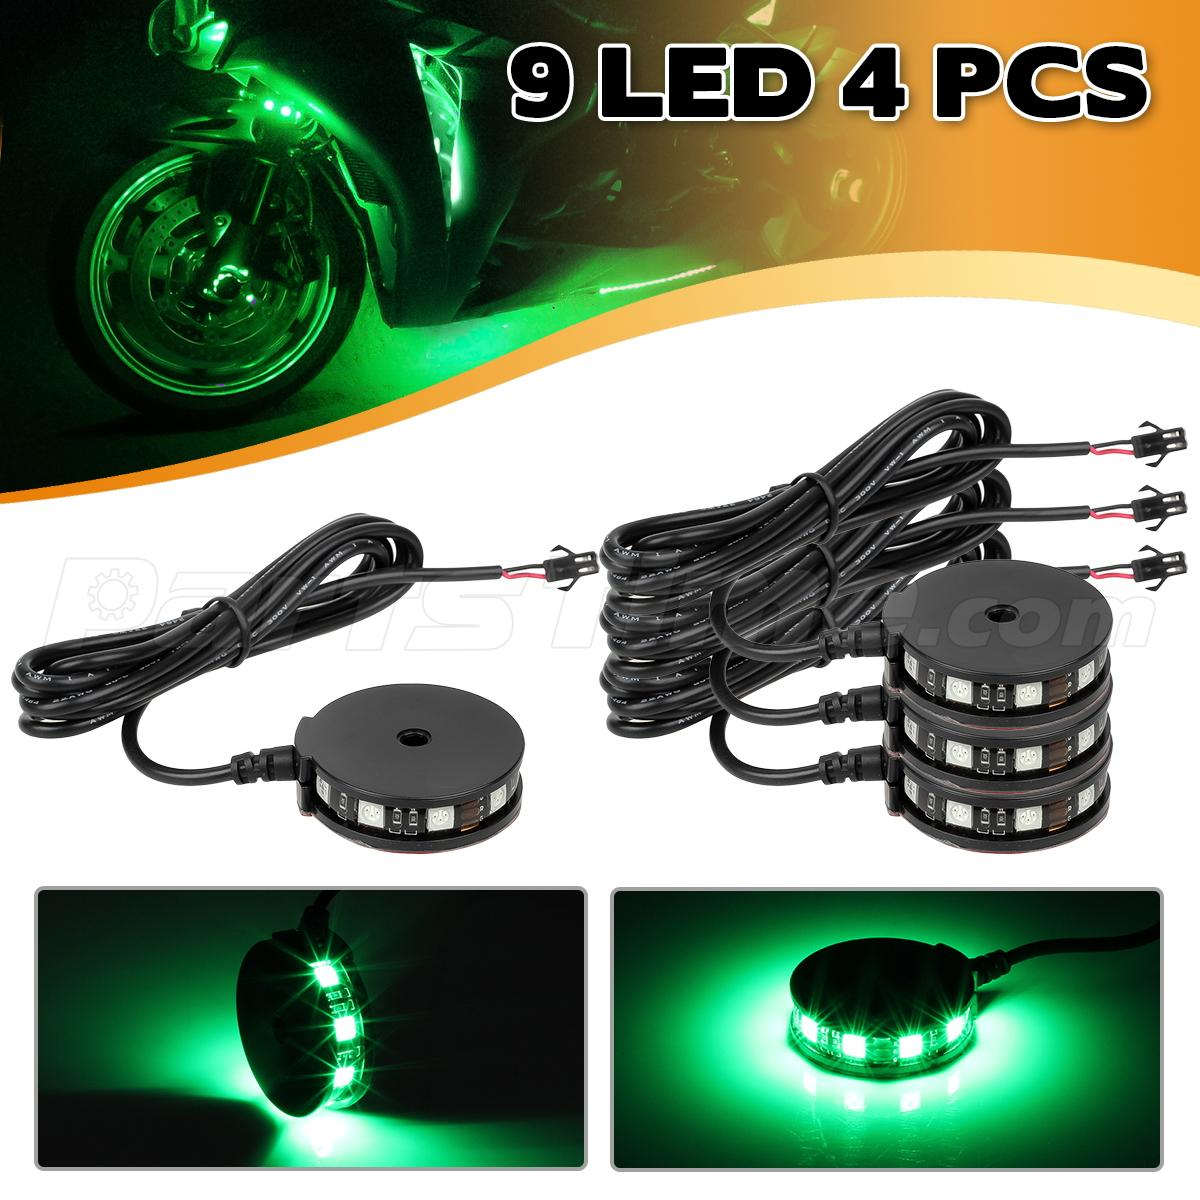 4 Green Color Led Motorcycle Axle Wheel Pod Accent Light